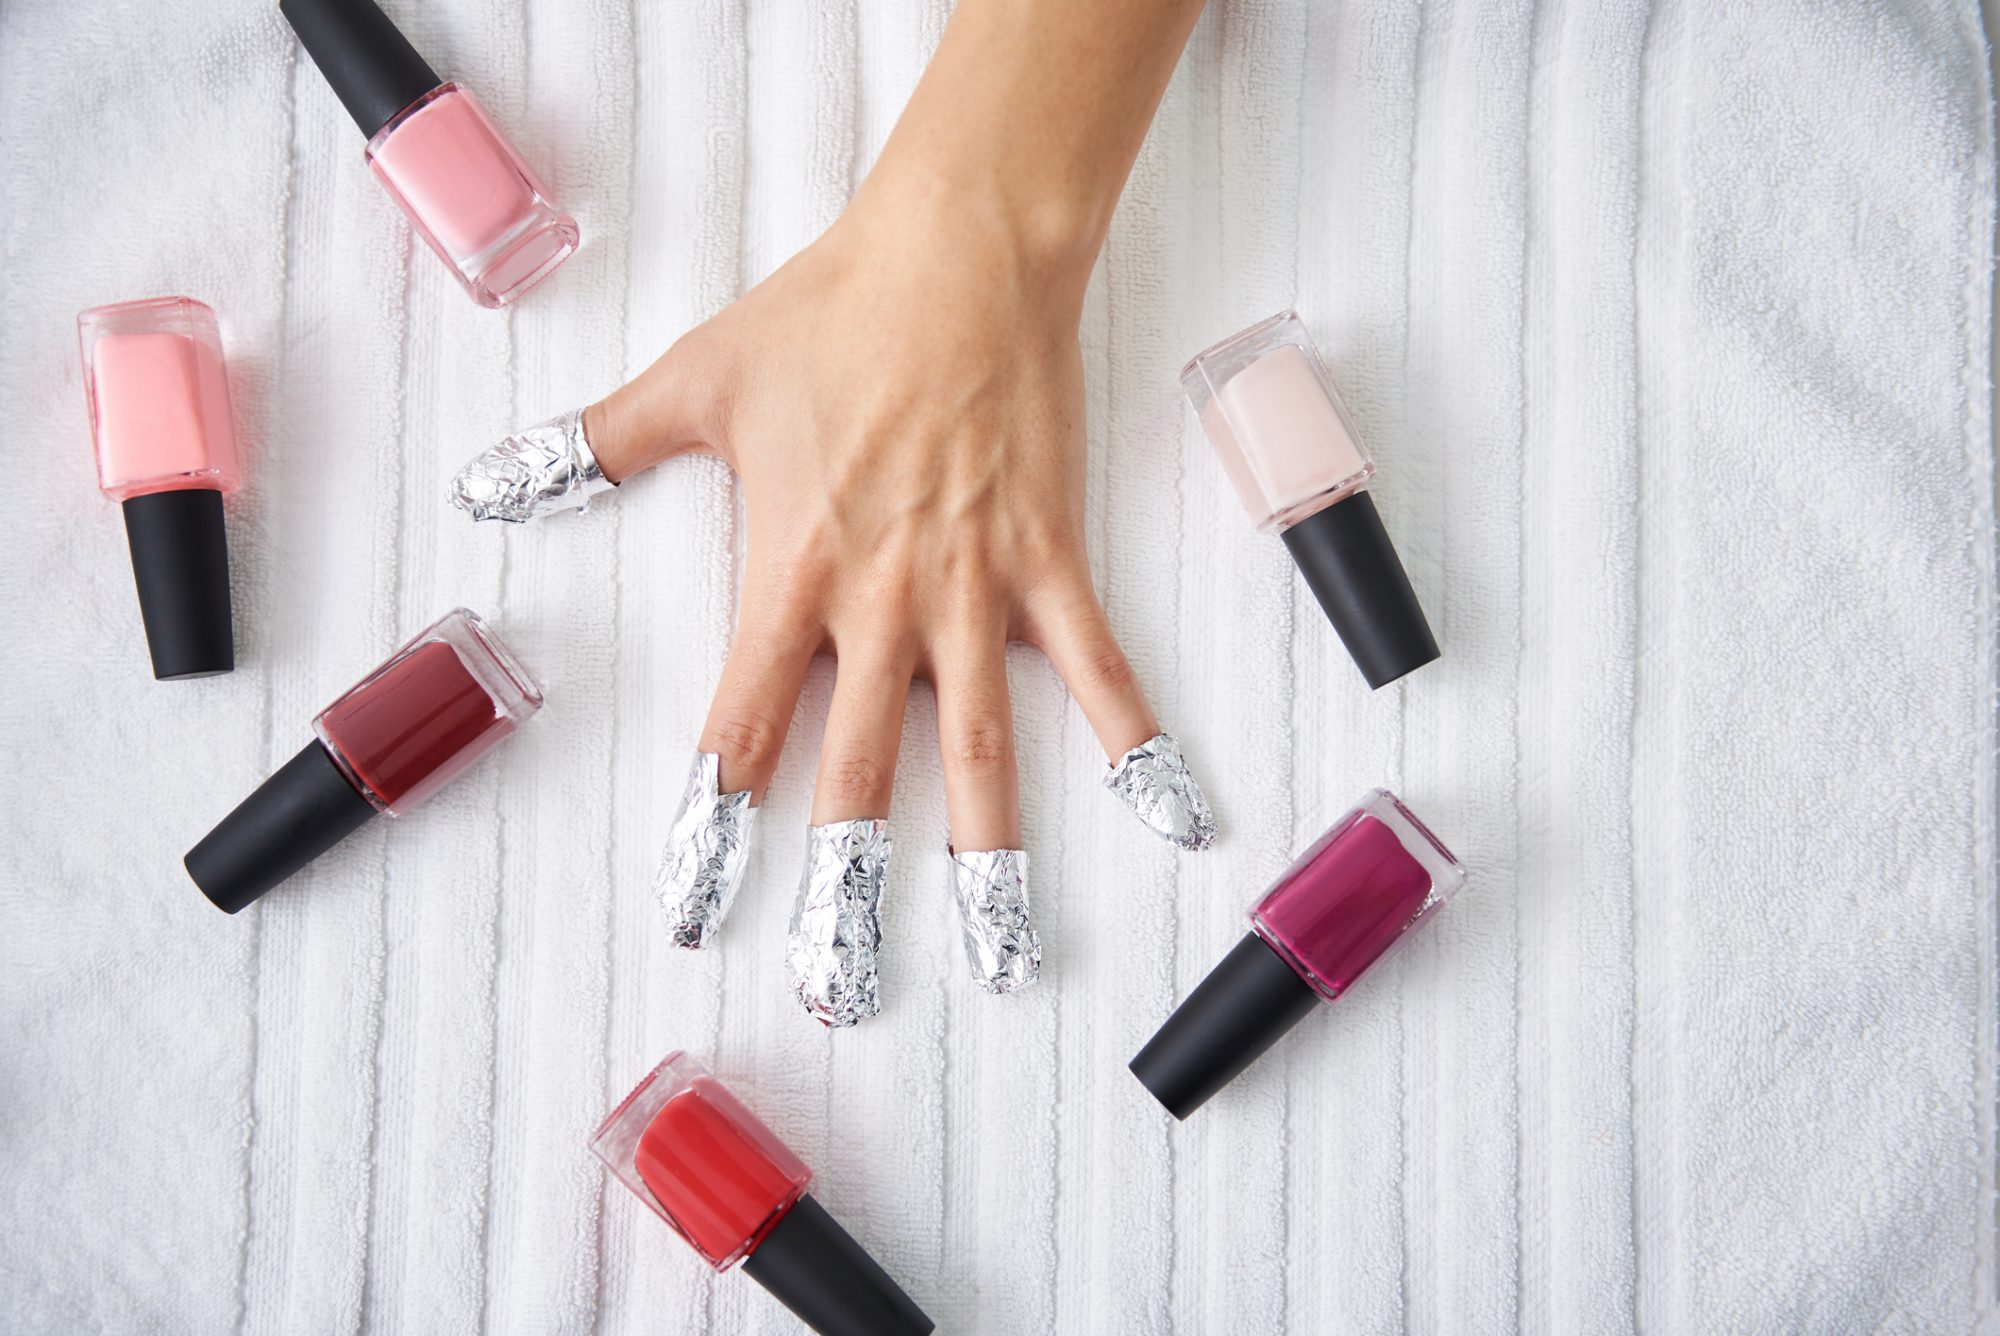 How To Remove a Dip Powder Manicure At Home When You Can't Make It to the Salon